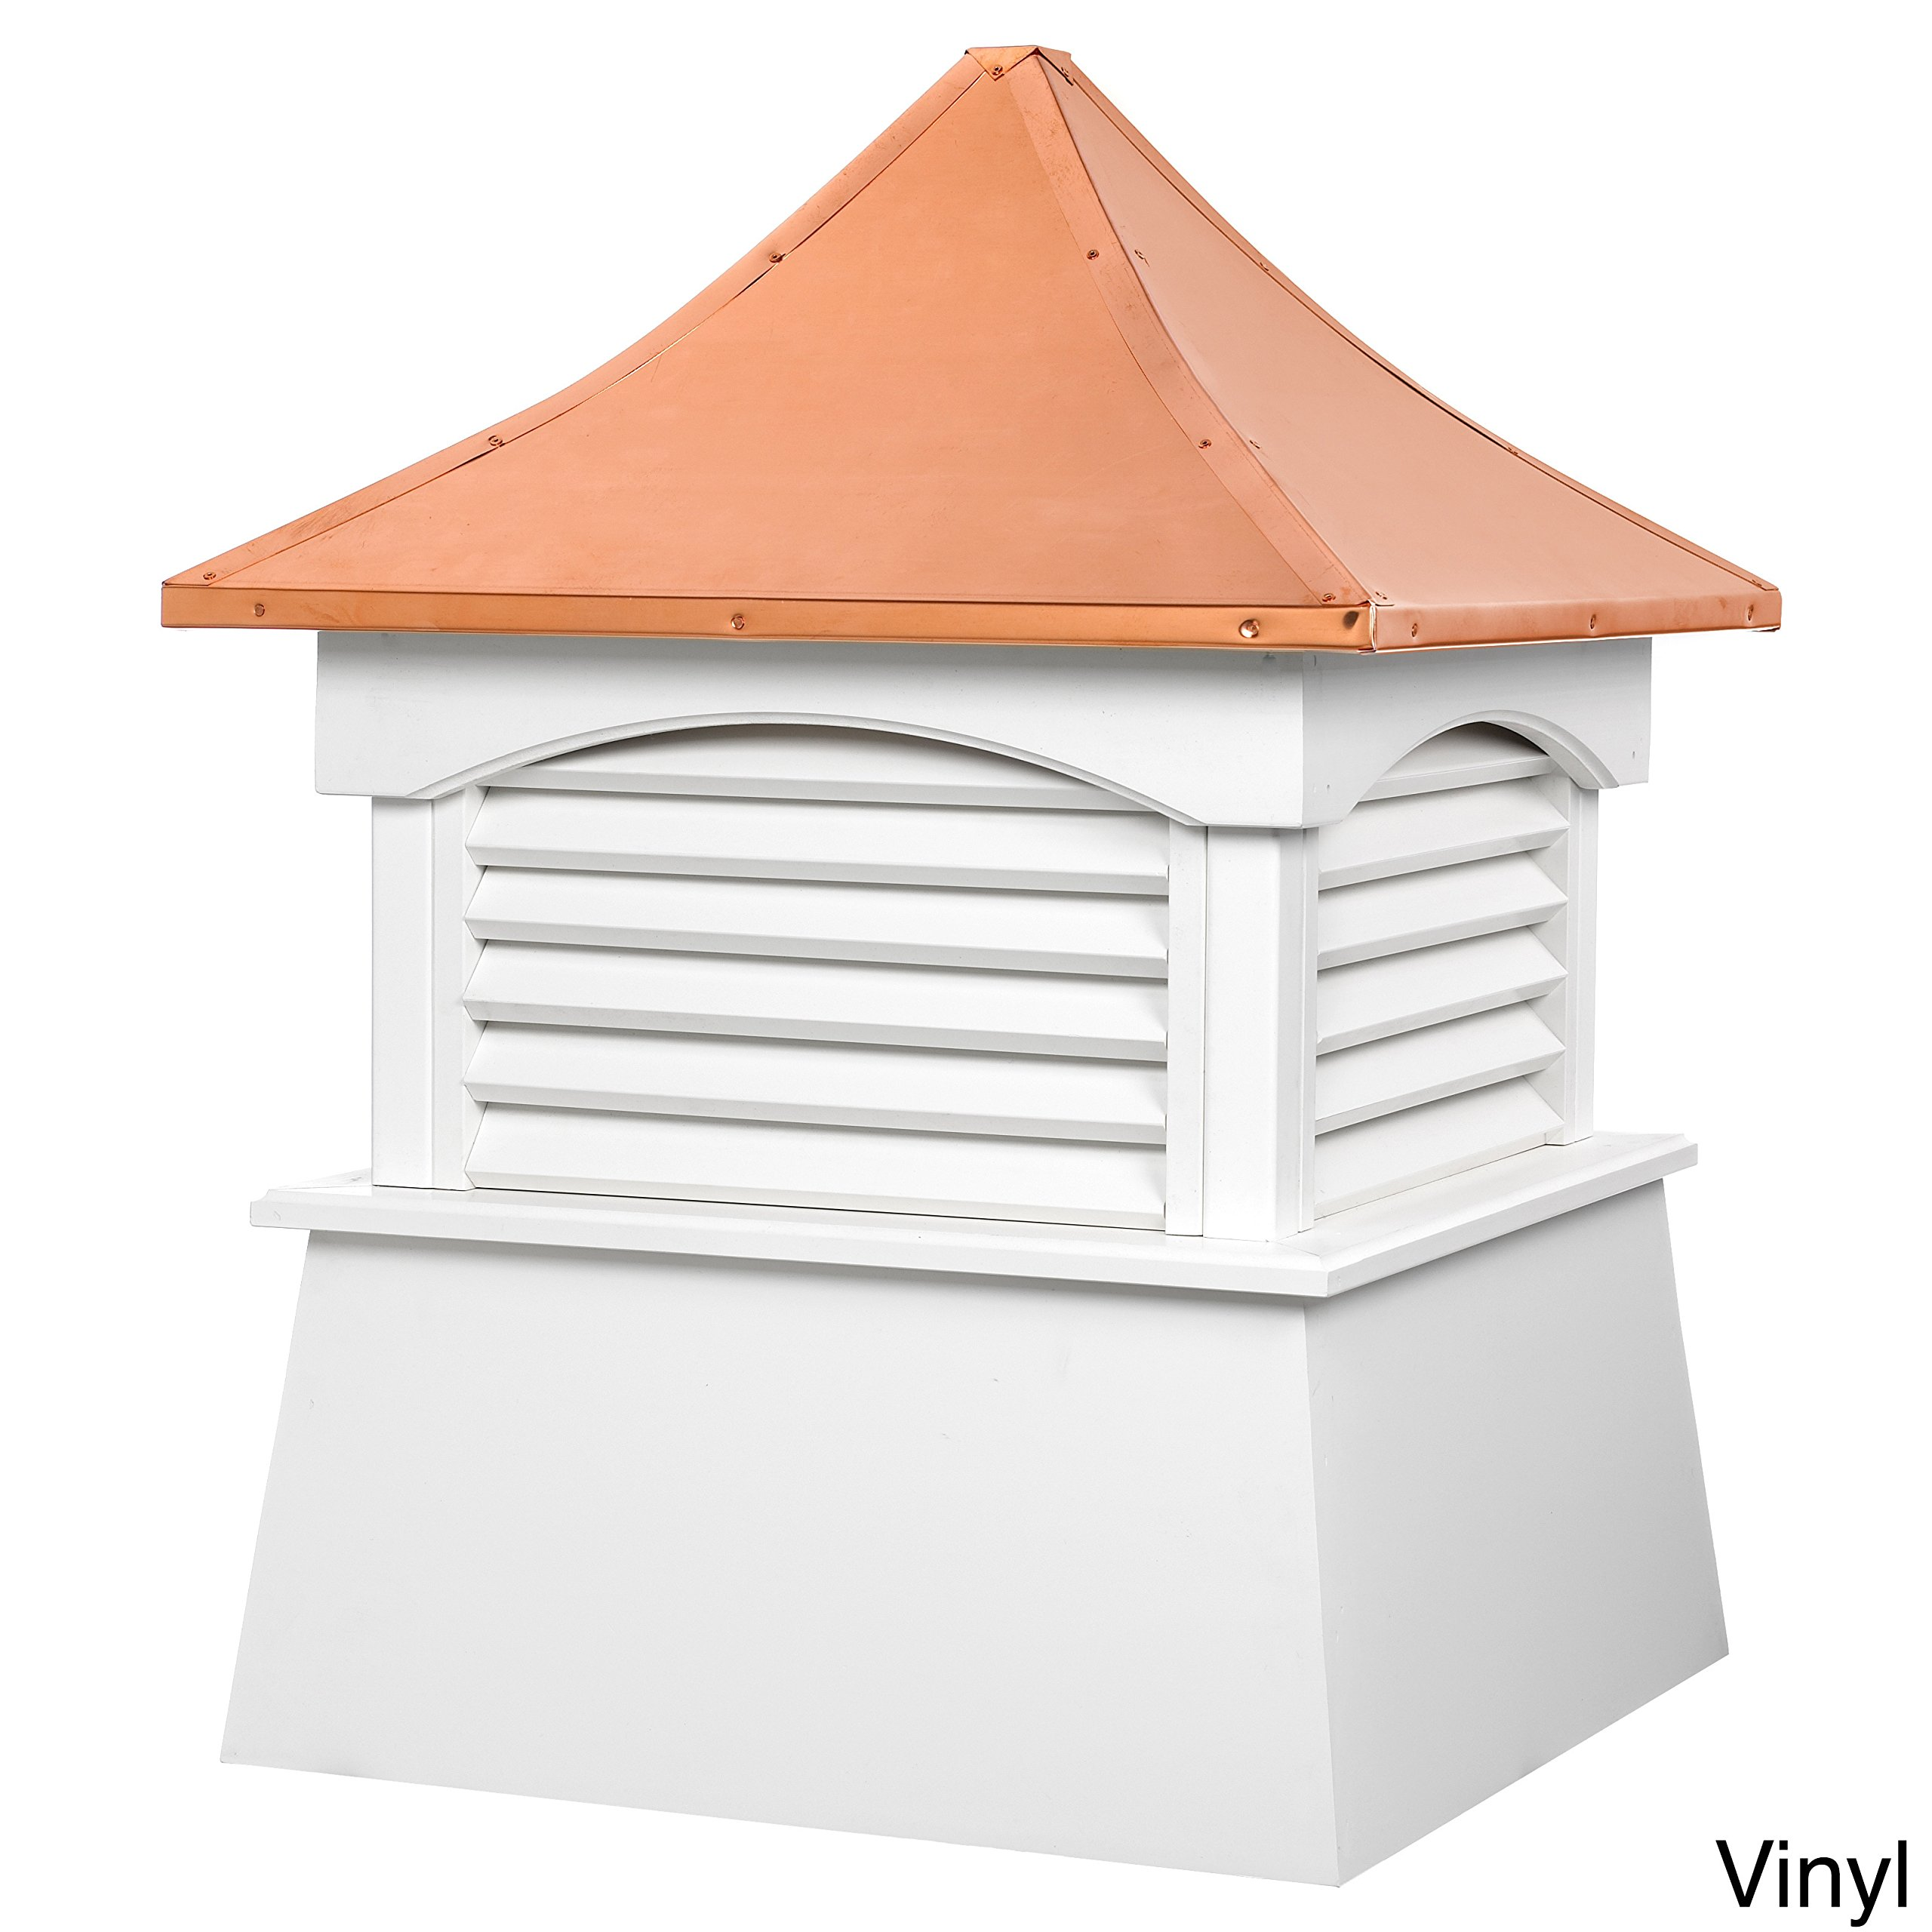 Good Directions Vinyl Coventry Louvered Cupola with Pure Copper Roof, Maintenance Free Solid Cellular PVC Vinyl, 18'' x 24'', Quick Ship, Reinforced Roof and Louvers, Cupolas